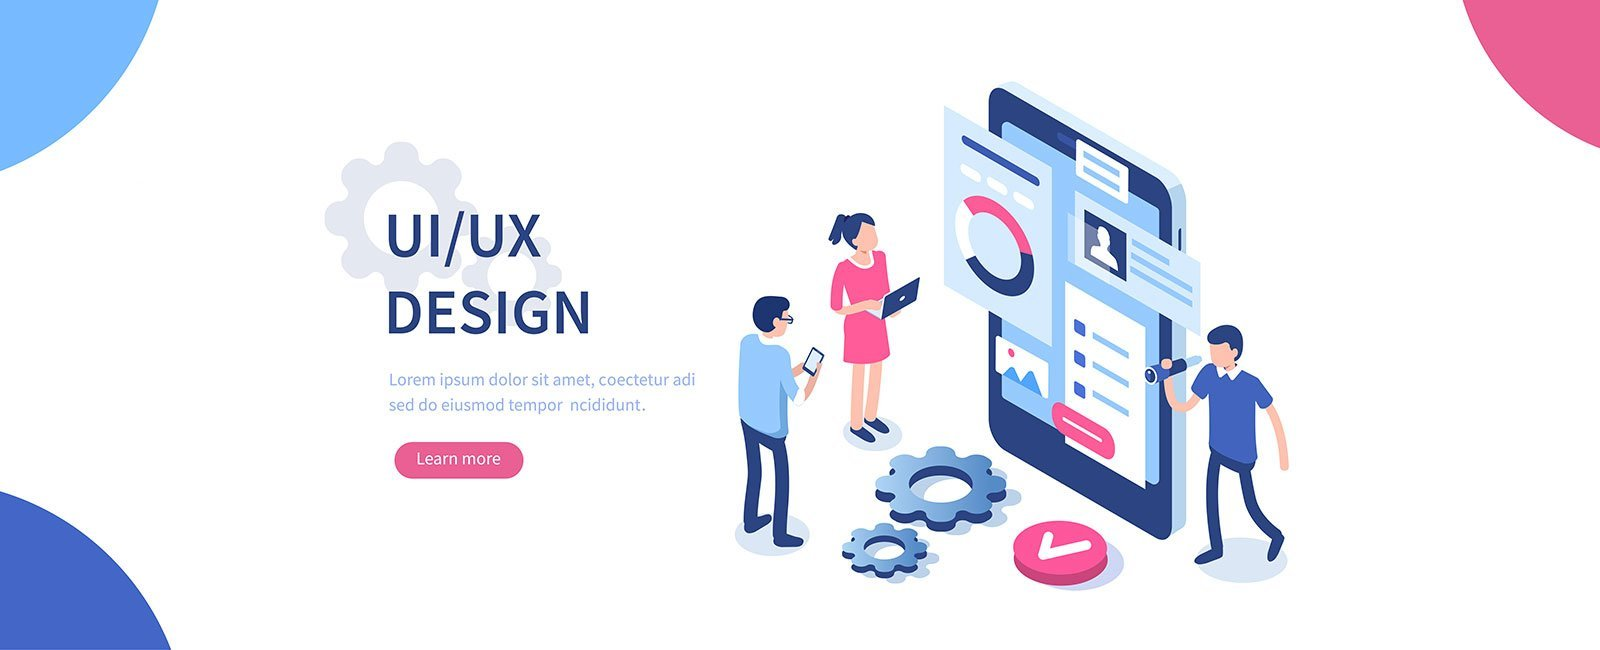 econsor UI/UX Design Marketing